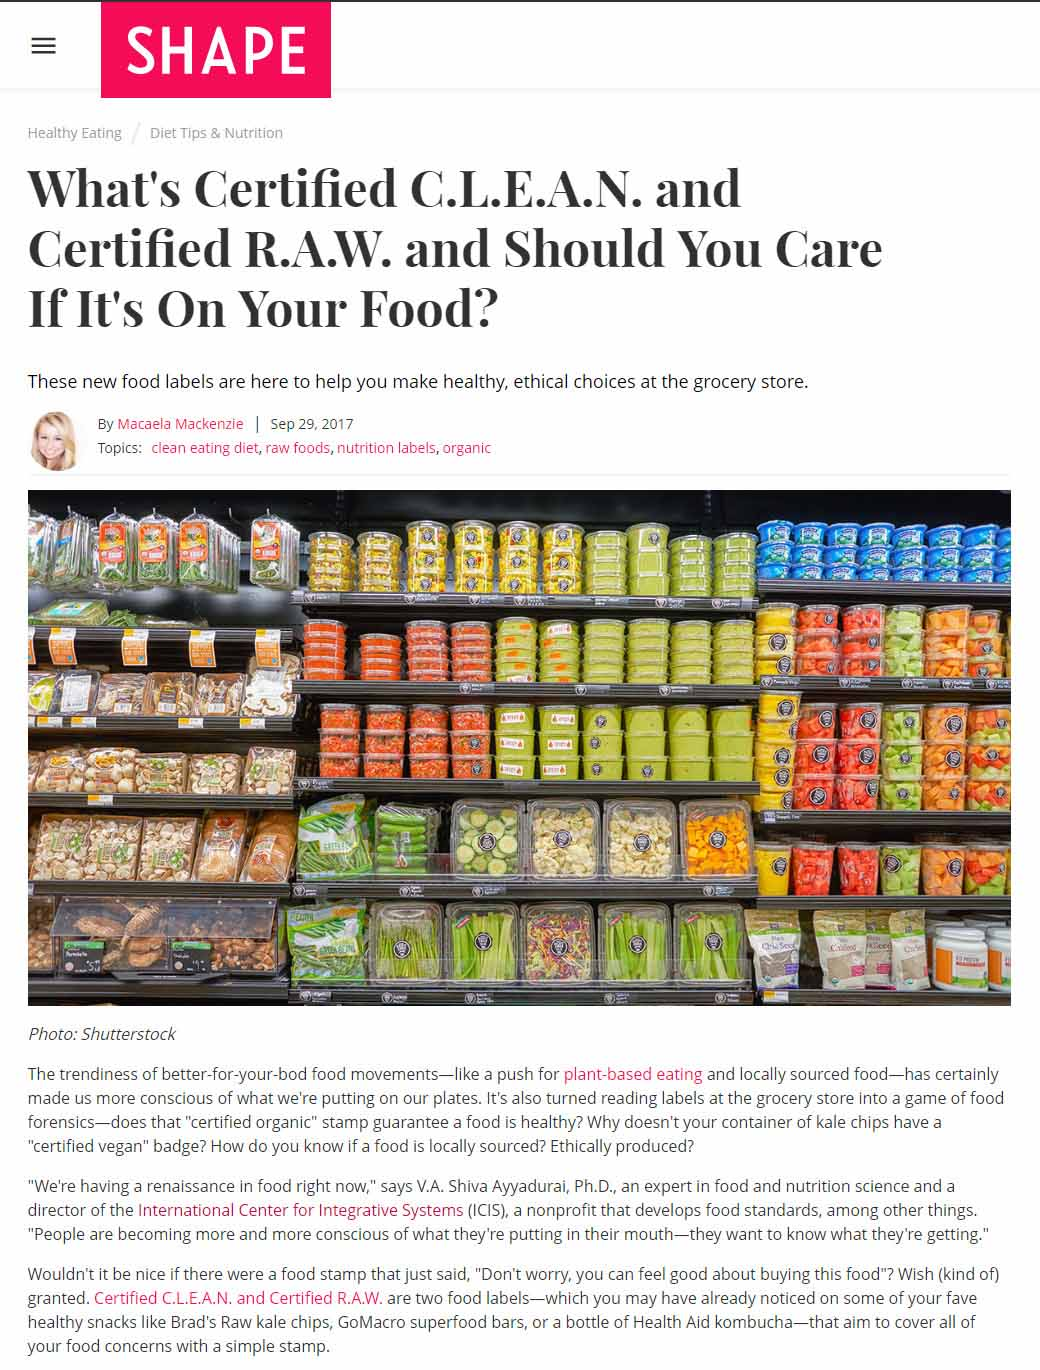 What's Certified C.L.E.A.N. And Certified R.A.W. And Should You Care If It's On Your Food?